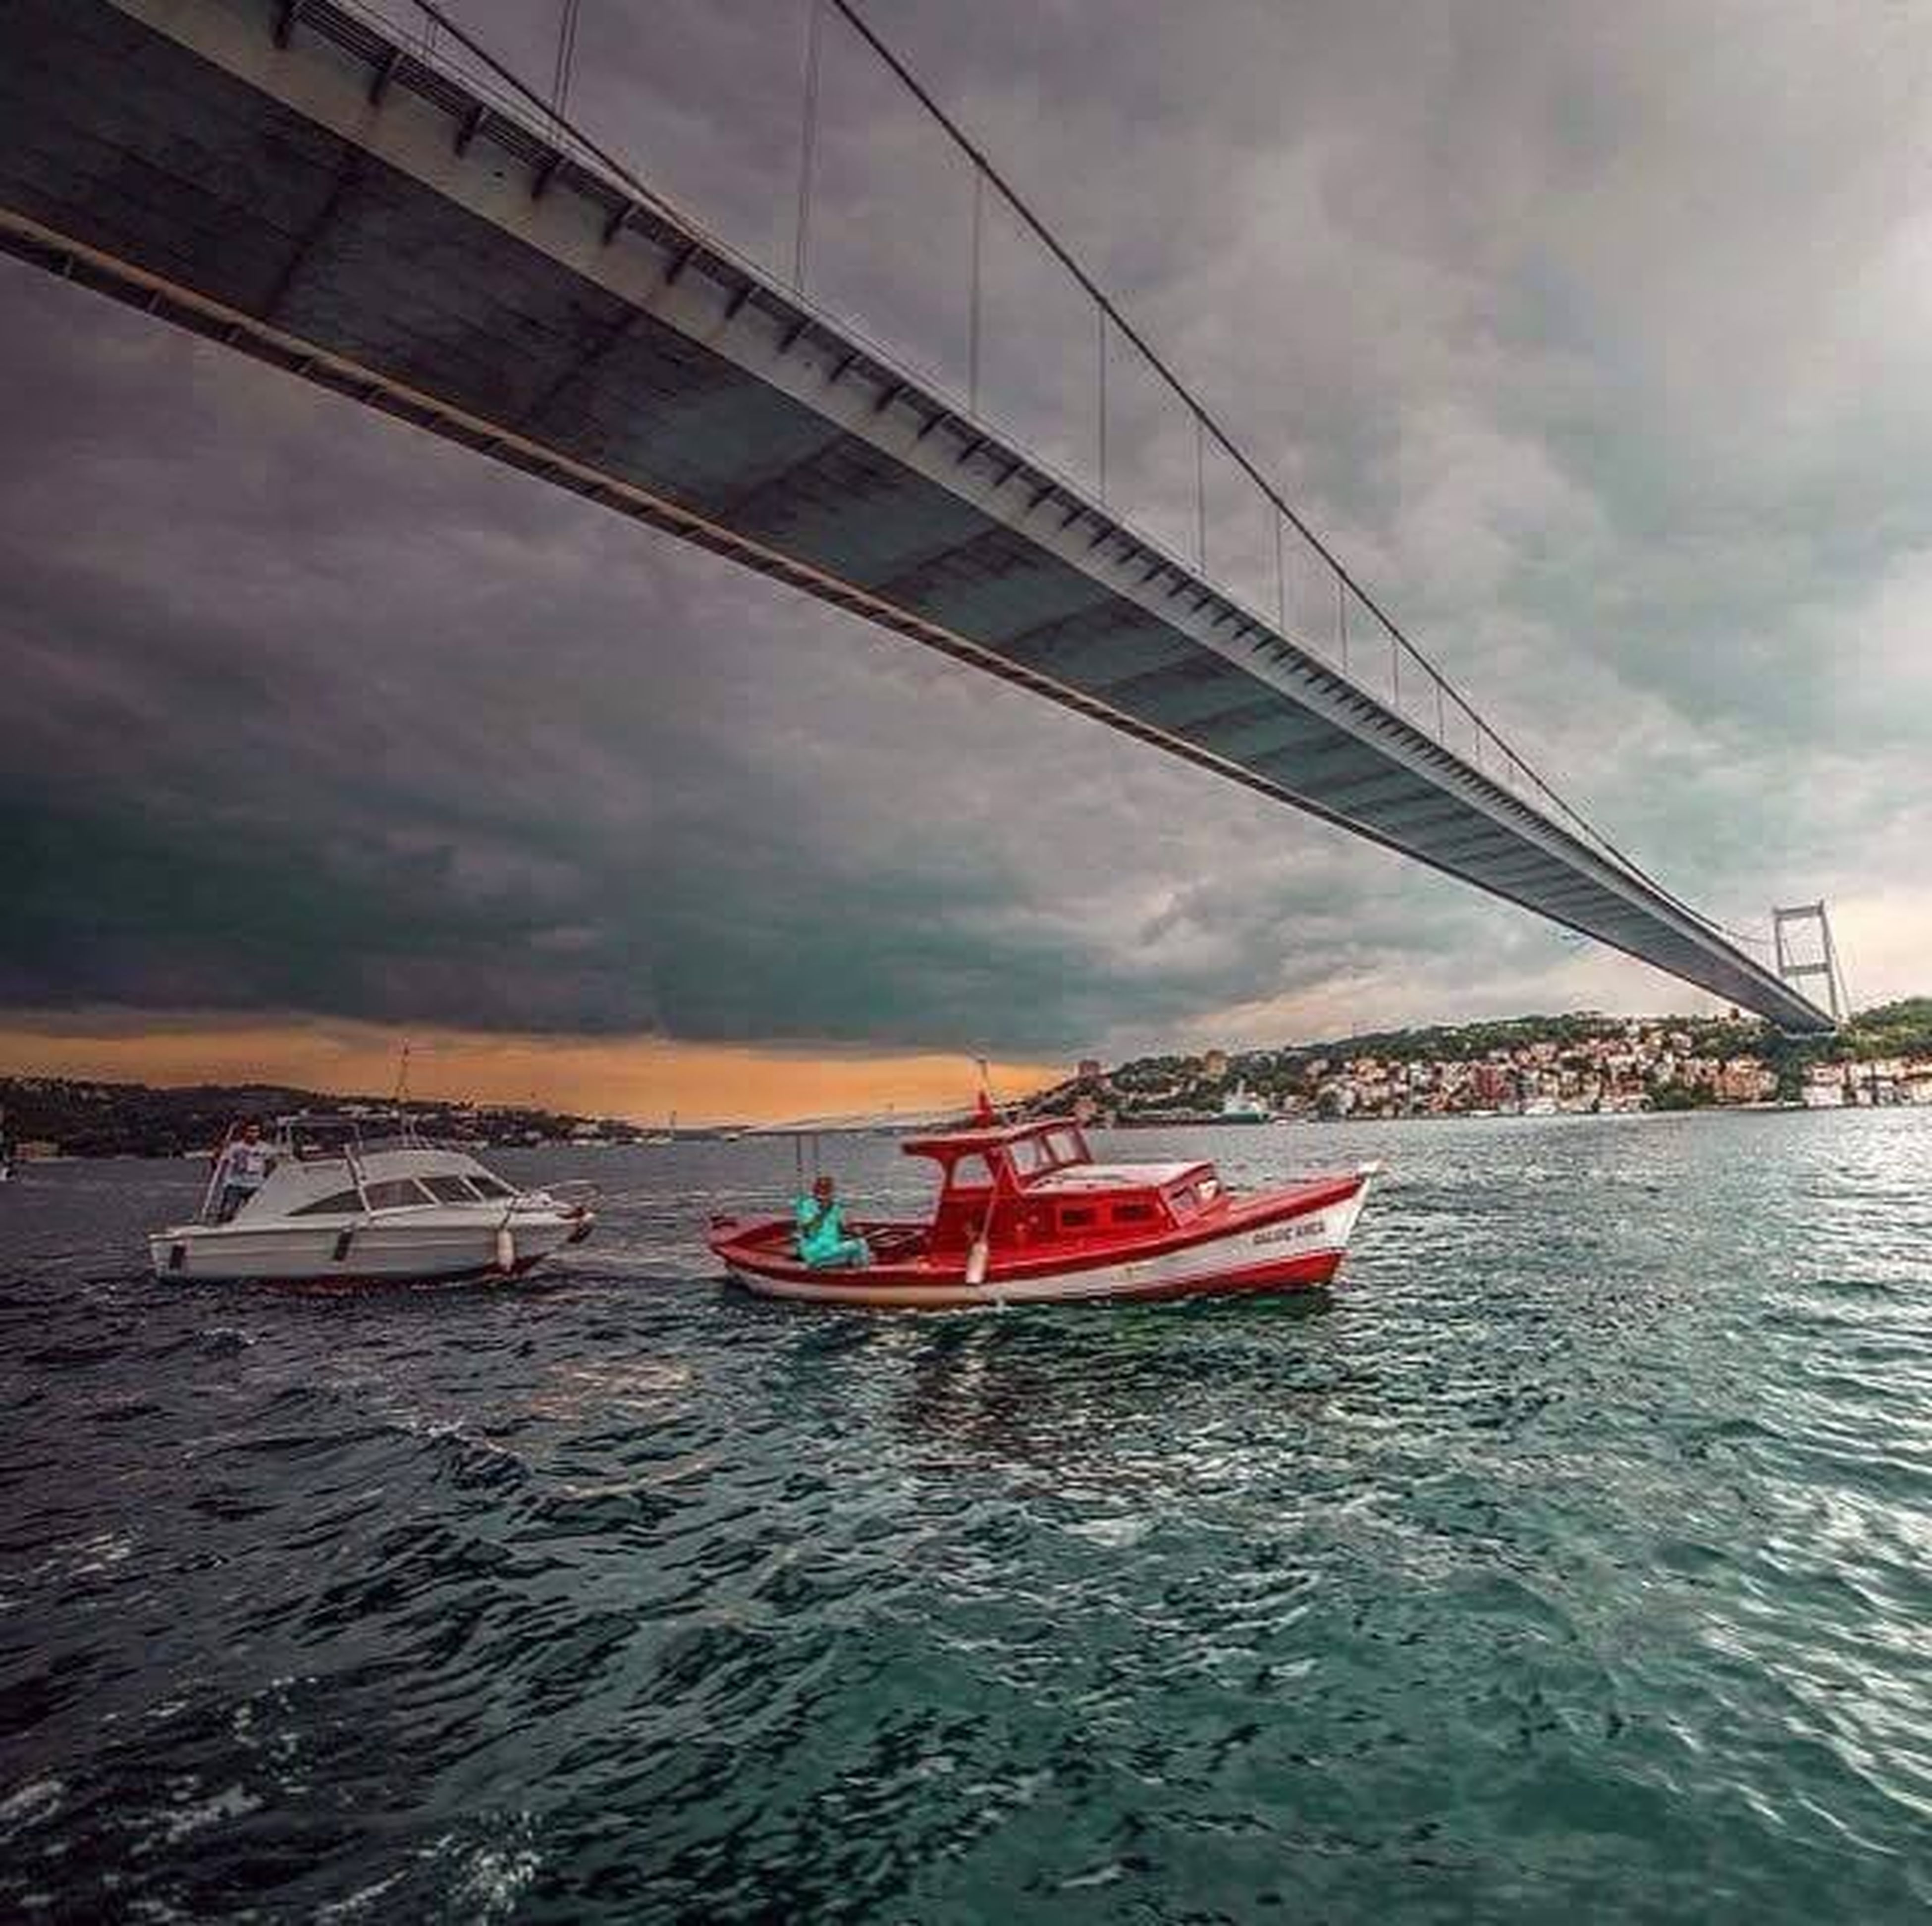 transportation, nautical vessel, water, sky, waterfront, cloud - sky, mode of transport, boat, cloudy, sea, built structure, cloud, architecture, rippled, river, sailing, travel, moored, overcast, bridge - man made structure